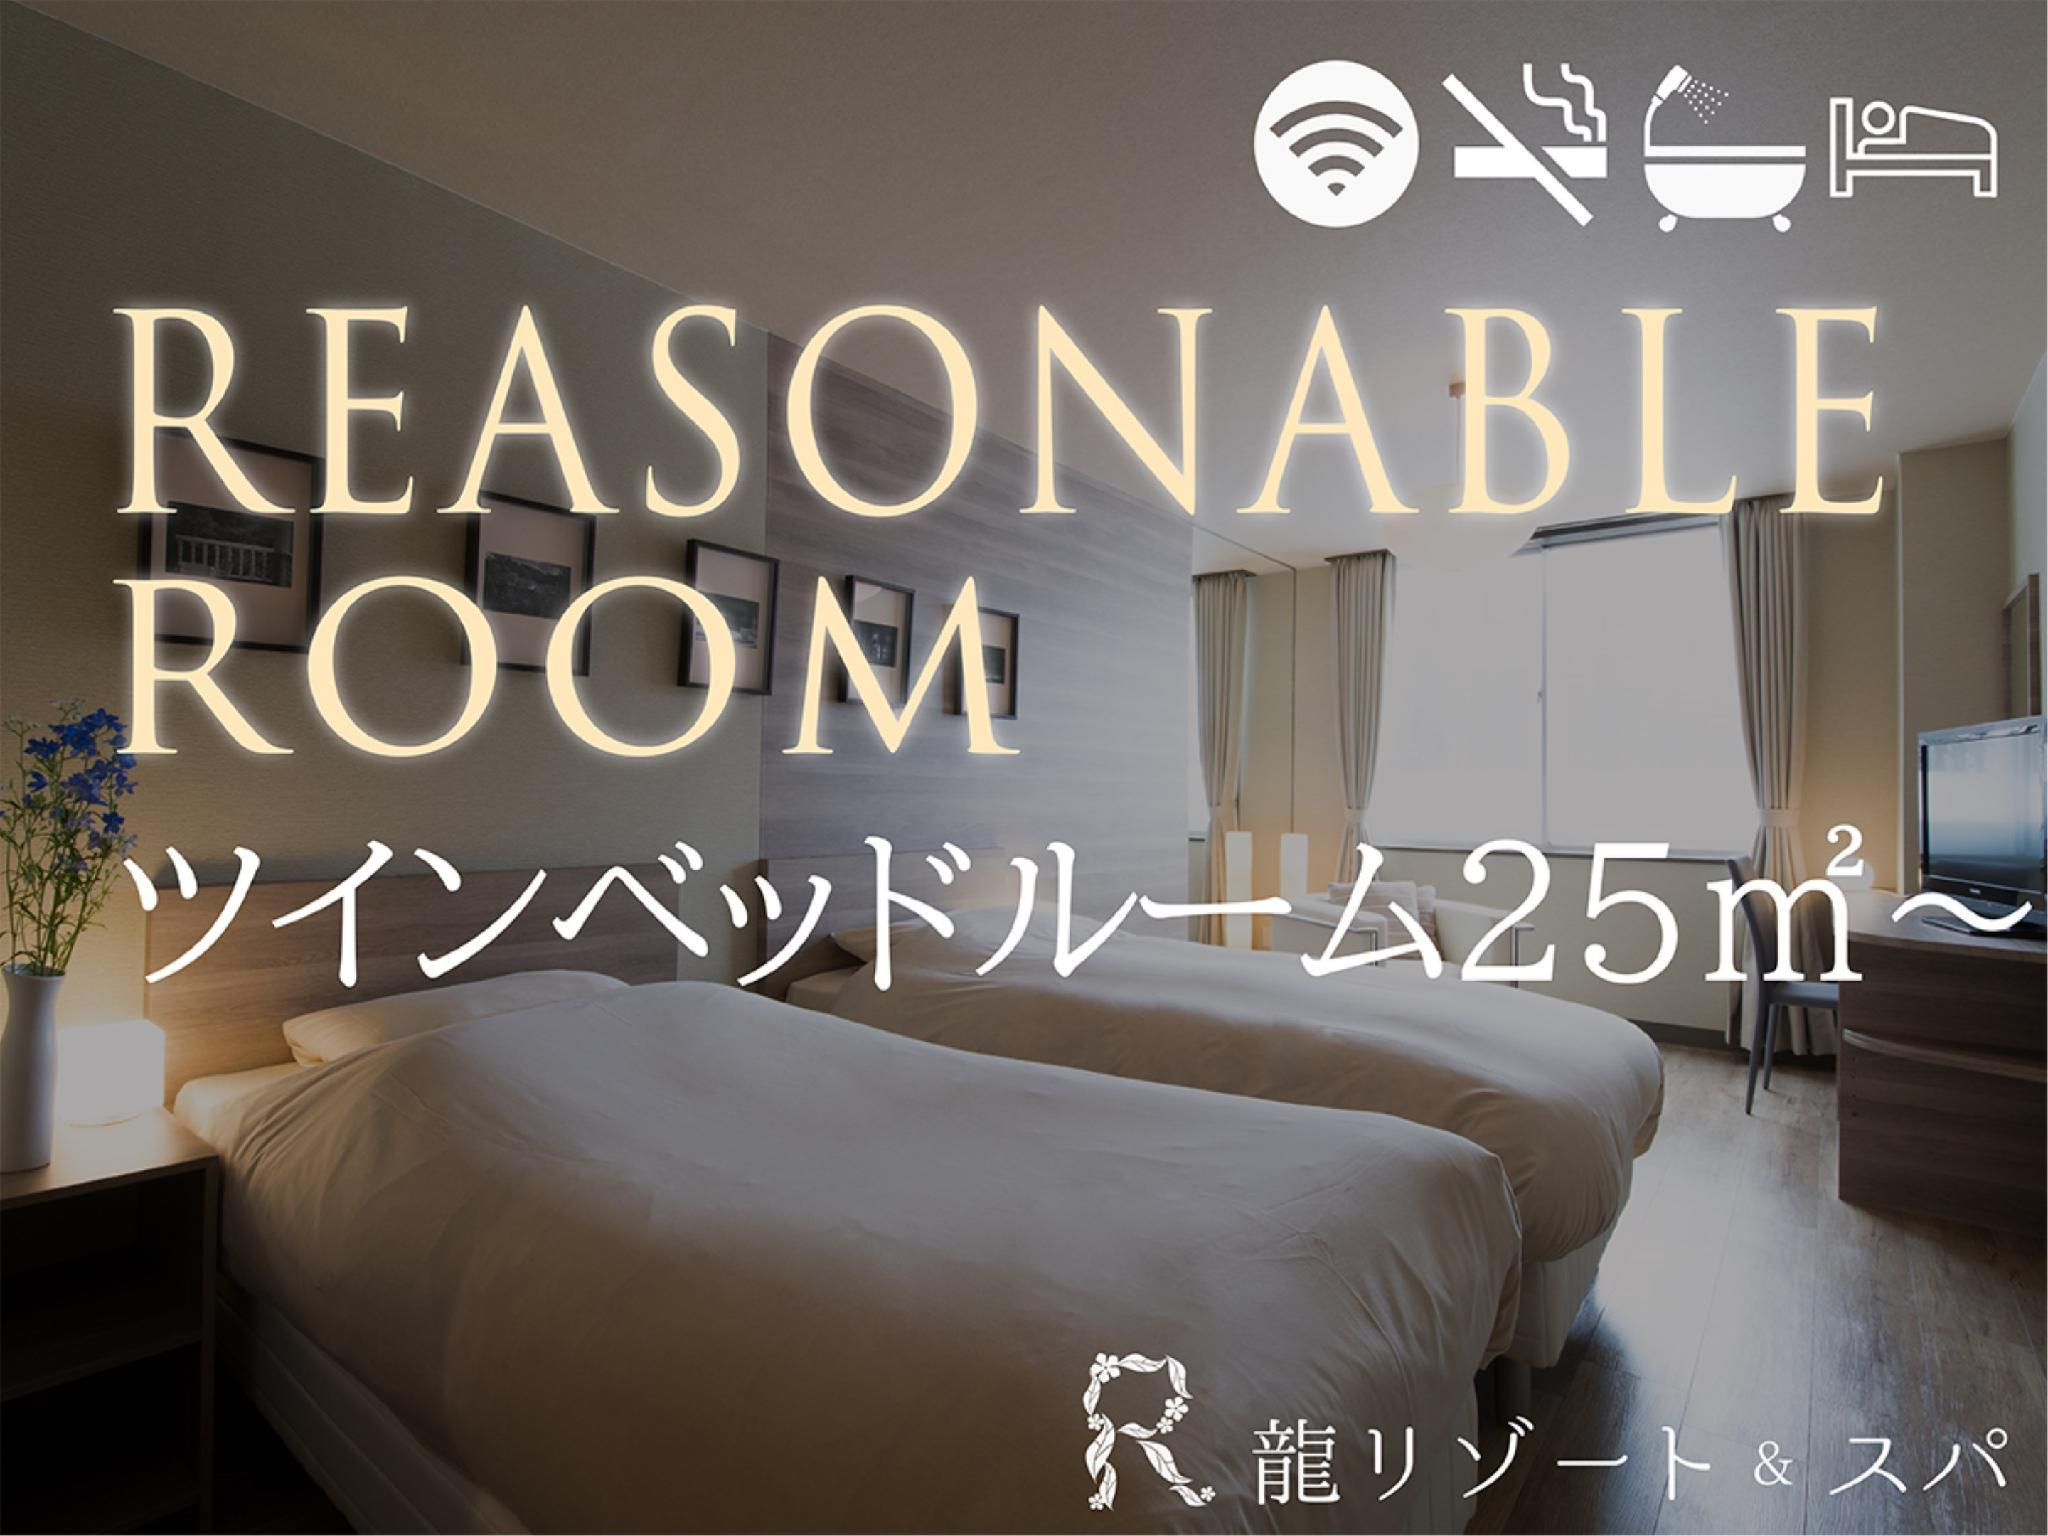 트윈룸 (Reasonable Twin Room)